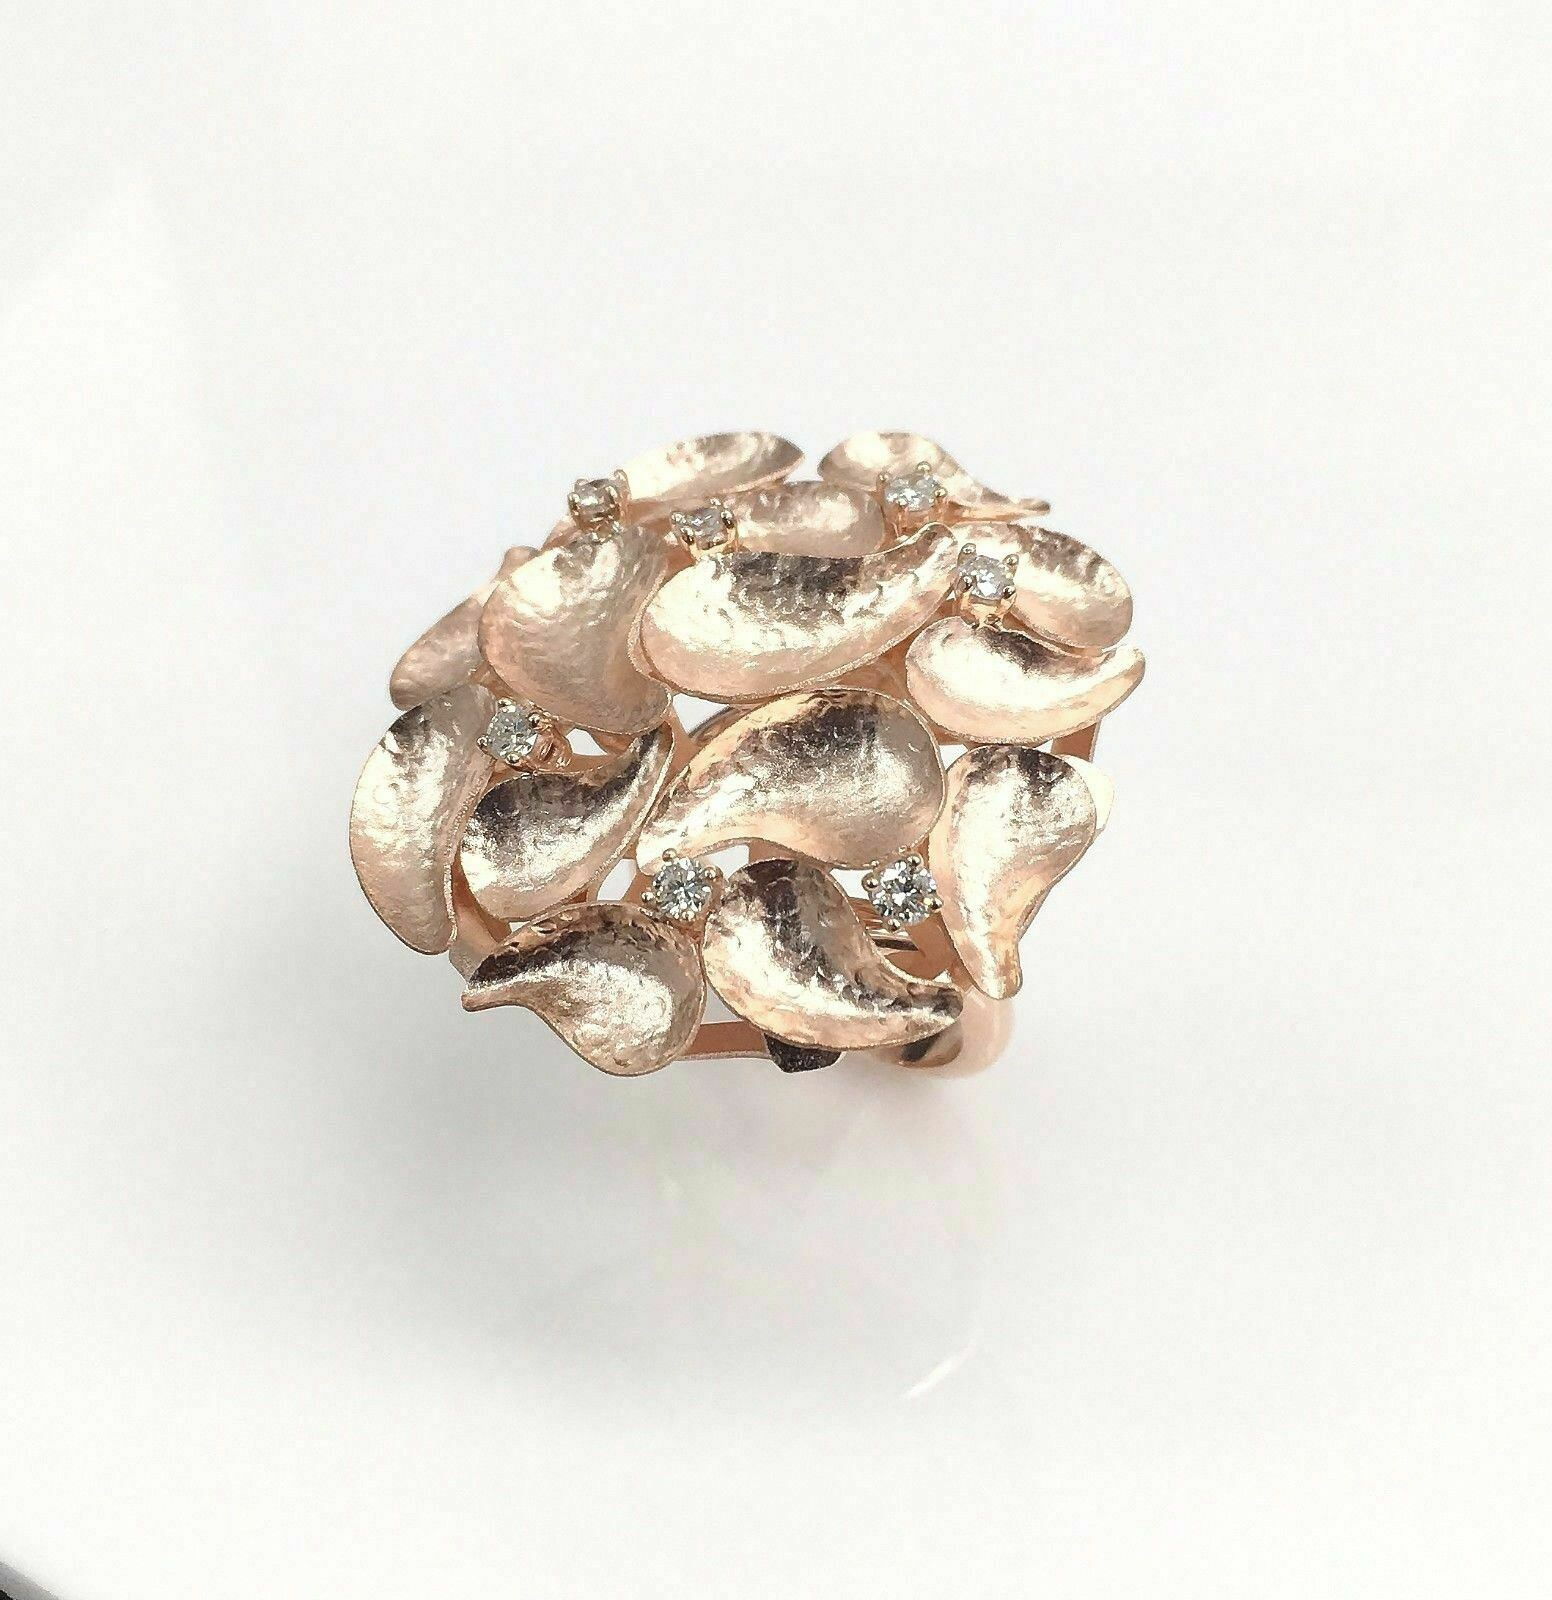 0.38 Carats t.w. Custom Made Diamond Bouquet Ring 18K Rose Gold Brand New